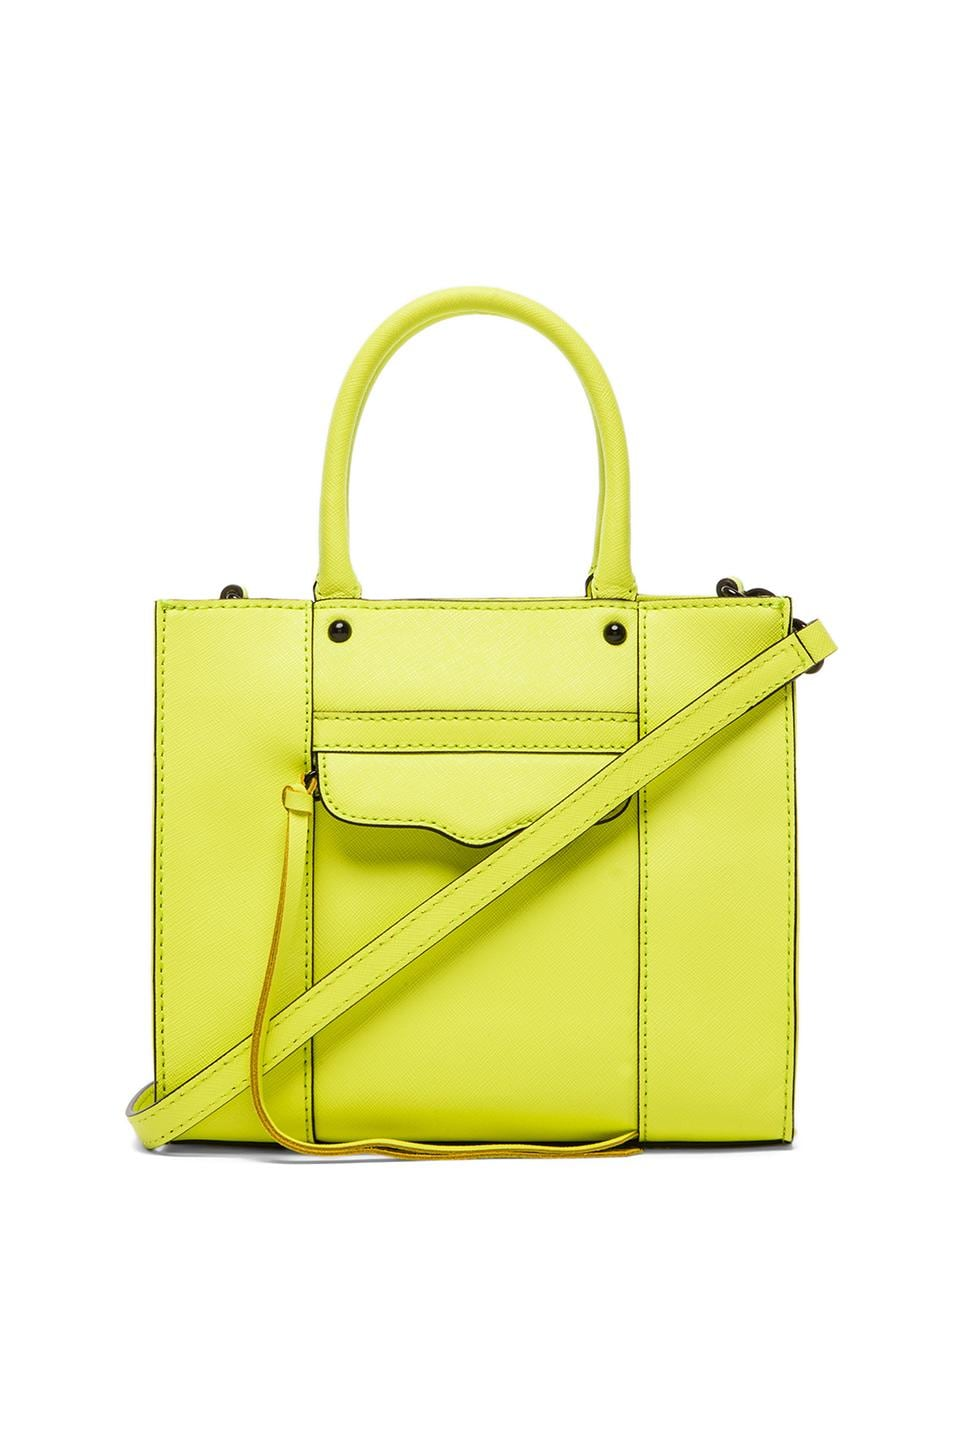 Rebecca Minkoff MAB Tote Mini in Acid Yellow